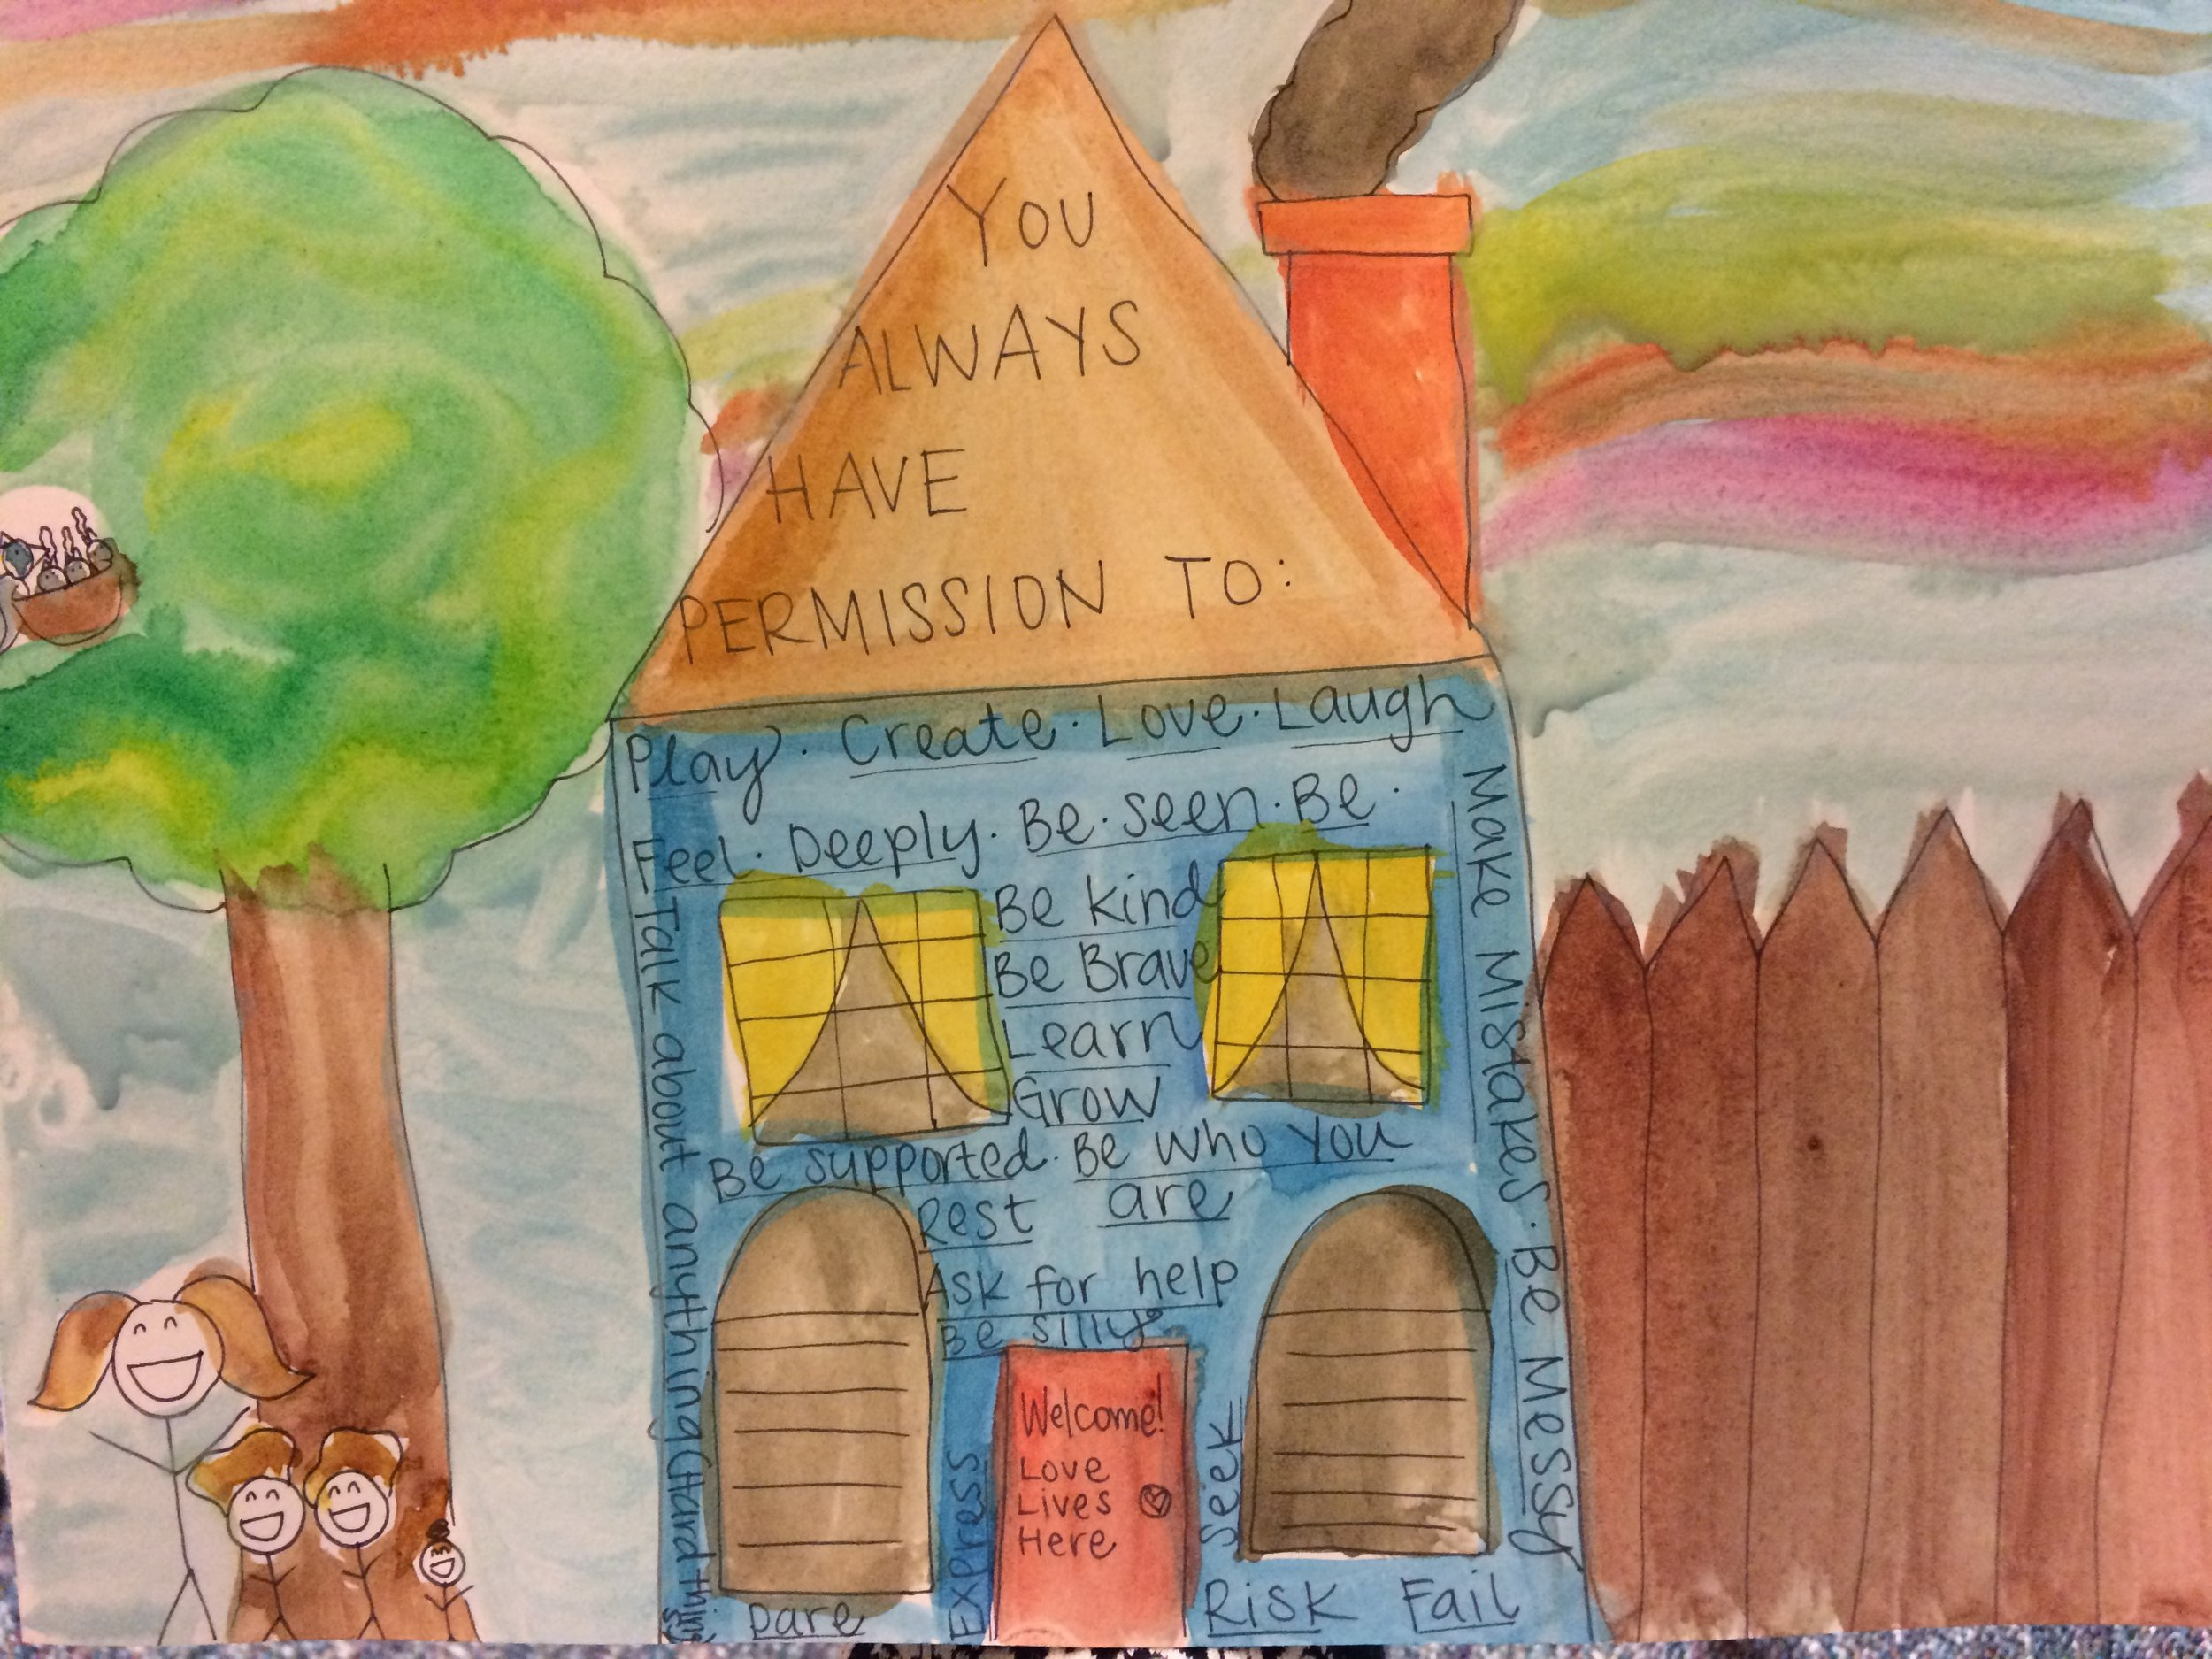 "Watercolor of family, tree, house with words ""You always have permission to: play, create, love, laugh, fail"" ect"